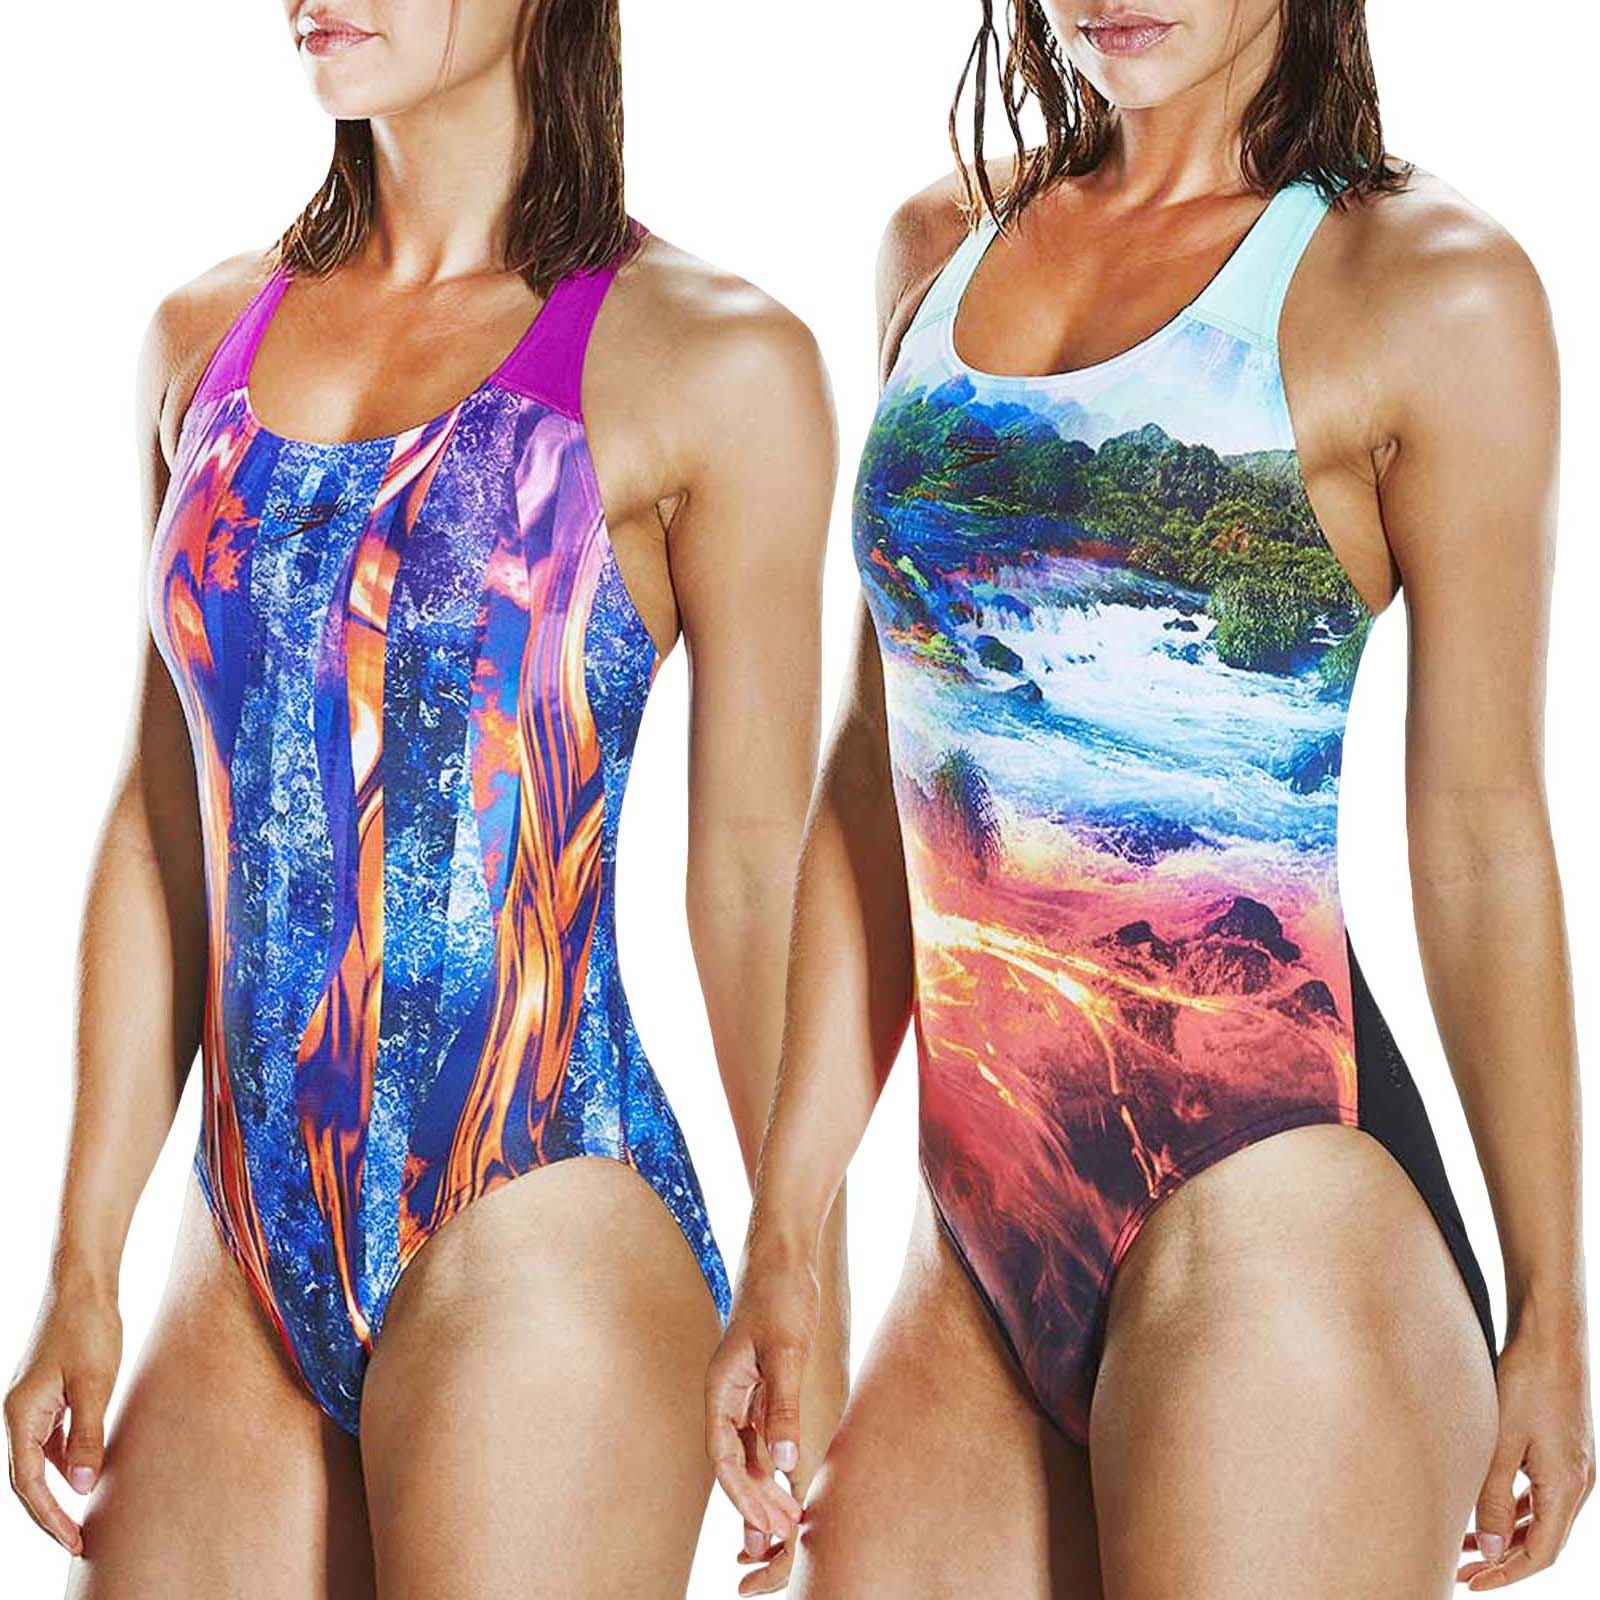 SPEEDO WOMENS TANKINI SWIMSUIT.BOOM ALLOVER UPF50 2 PIECE SWIMMING COSTUME.8S 38